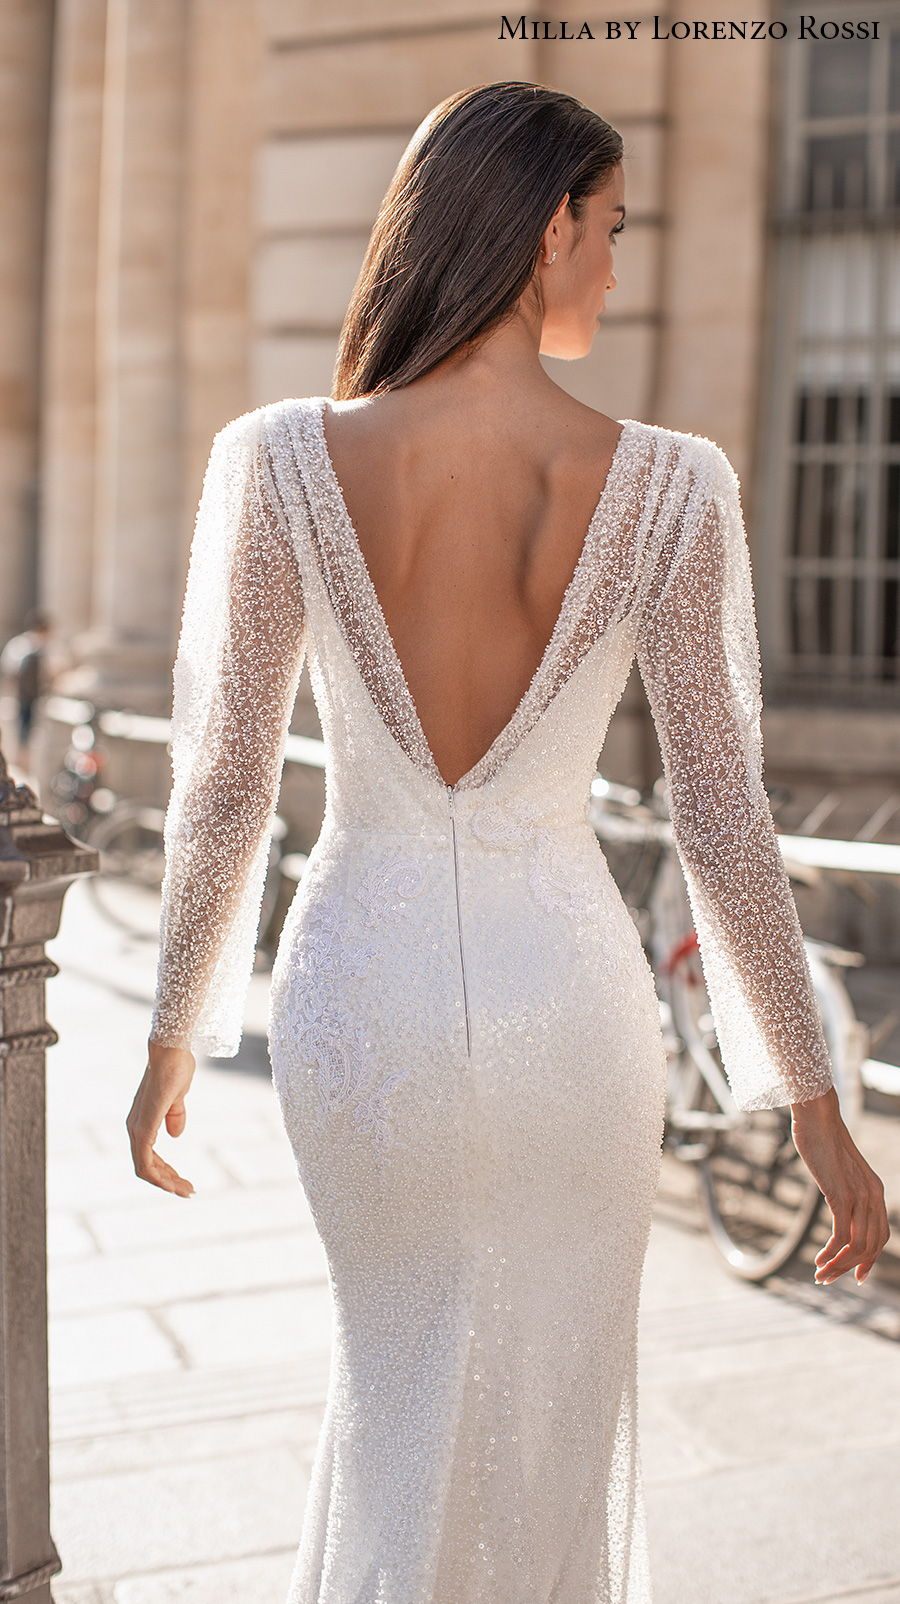 milla lorenzo rossi 2021 bridal long sleeves deep plunging v neck full embellishment glamorous elegant sheath wedding dress v back sweep train (leonela) zbv